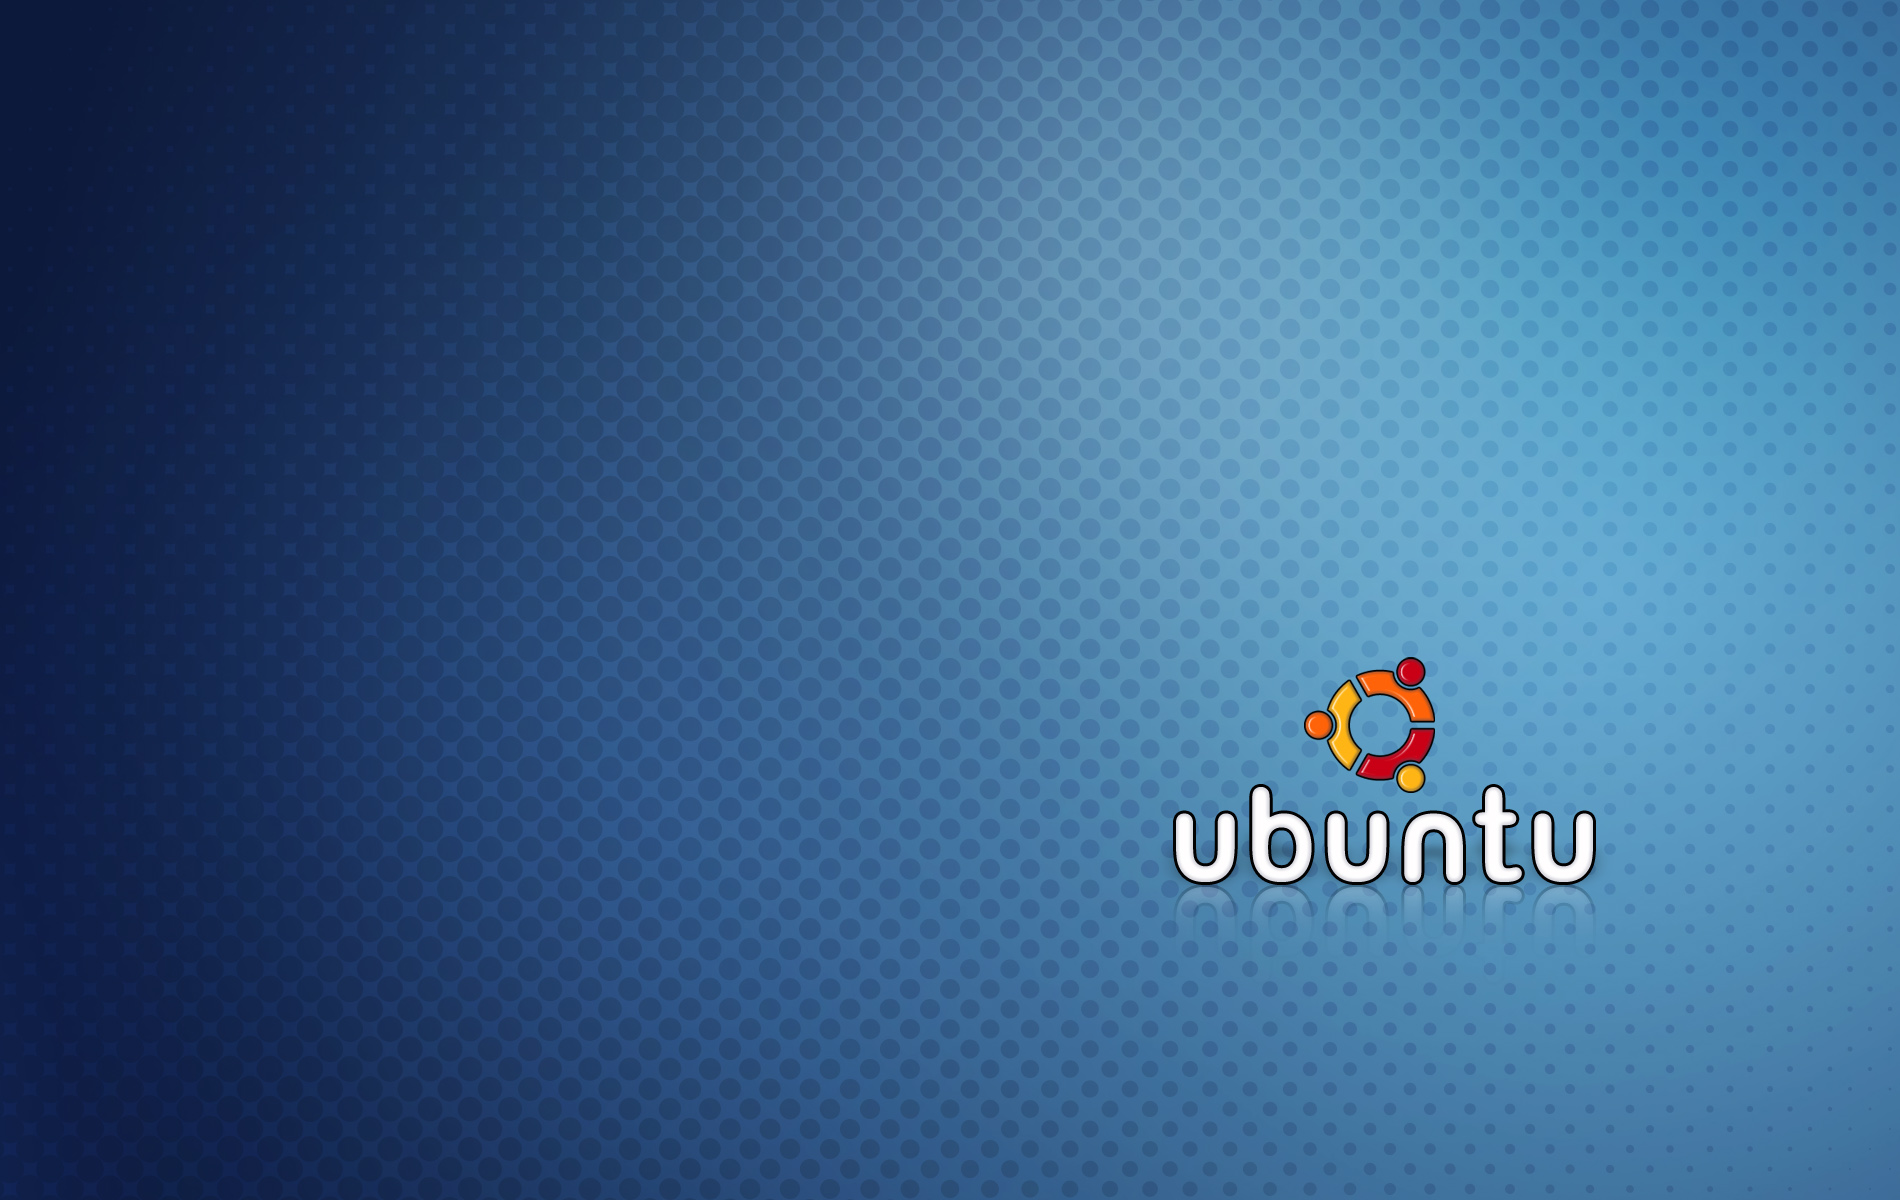 Ubuntu Wallpaper Set 7 « Awesome Wallpapers